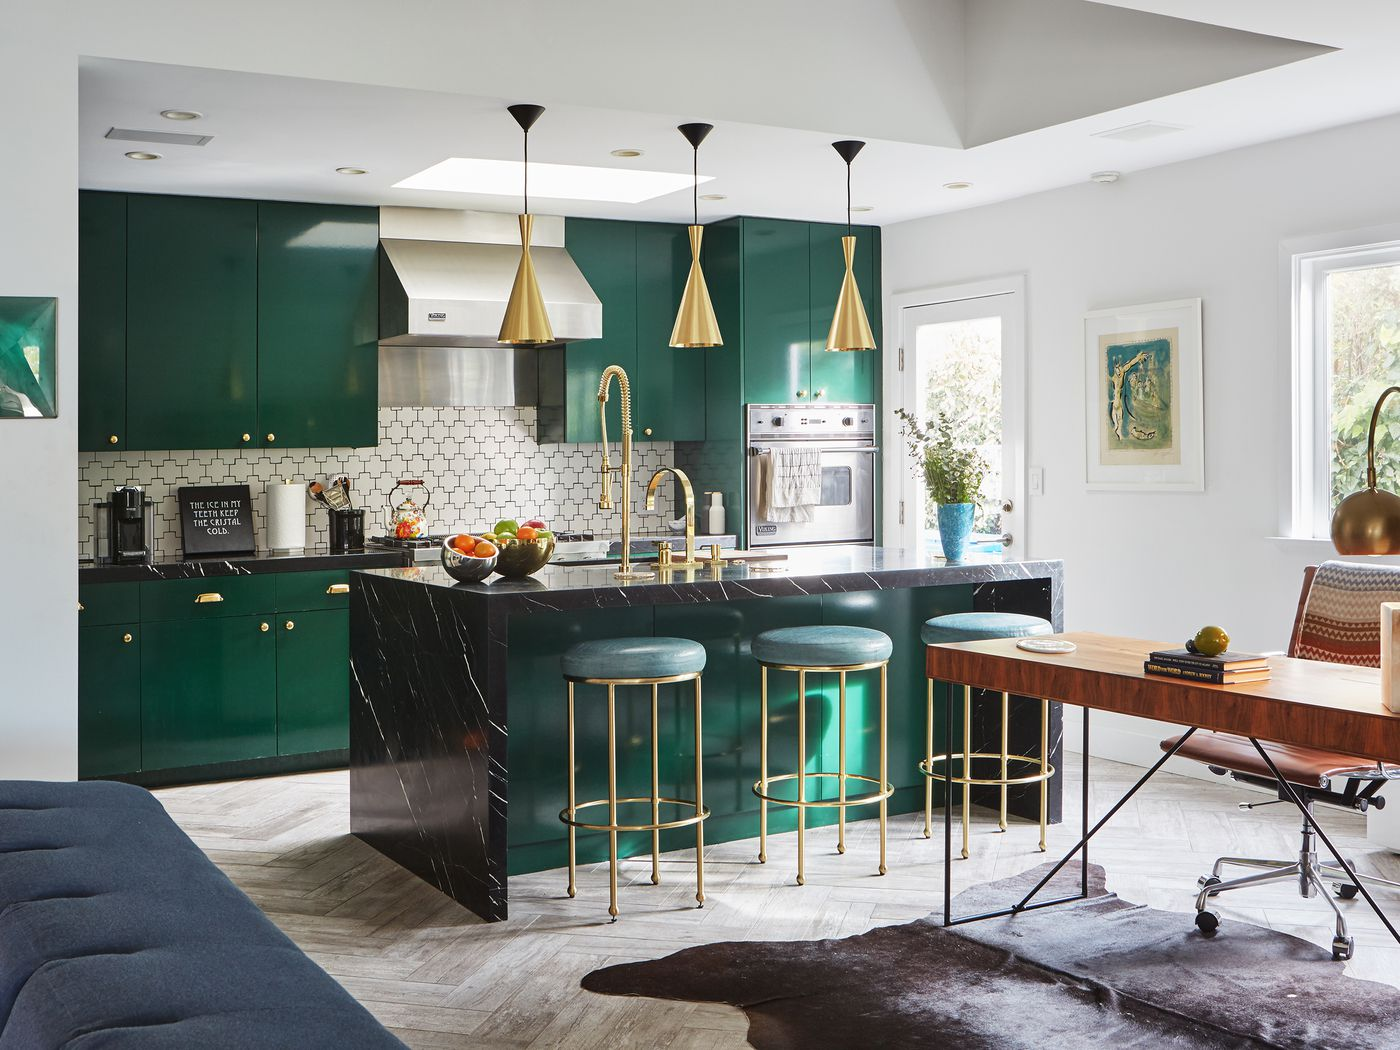 A guide to paint sheens, from glossy to matte - Curbed